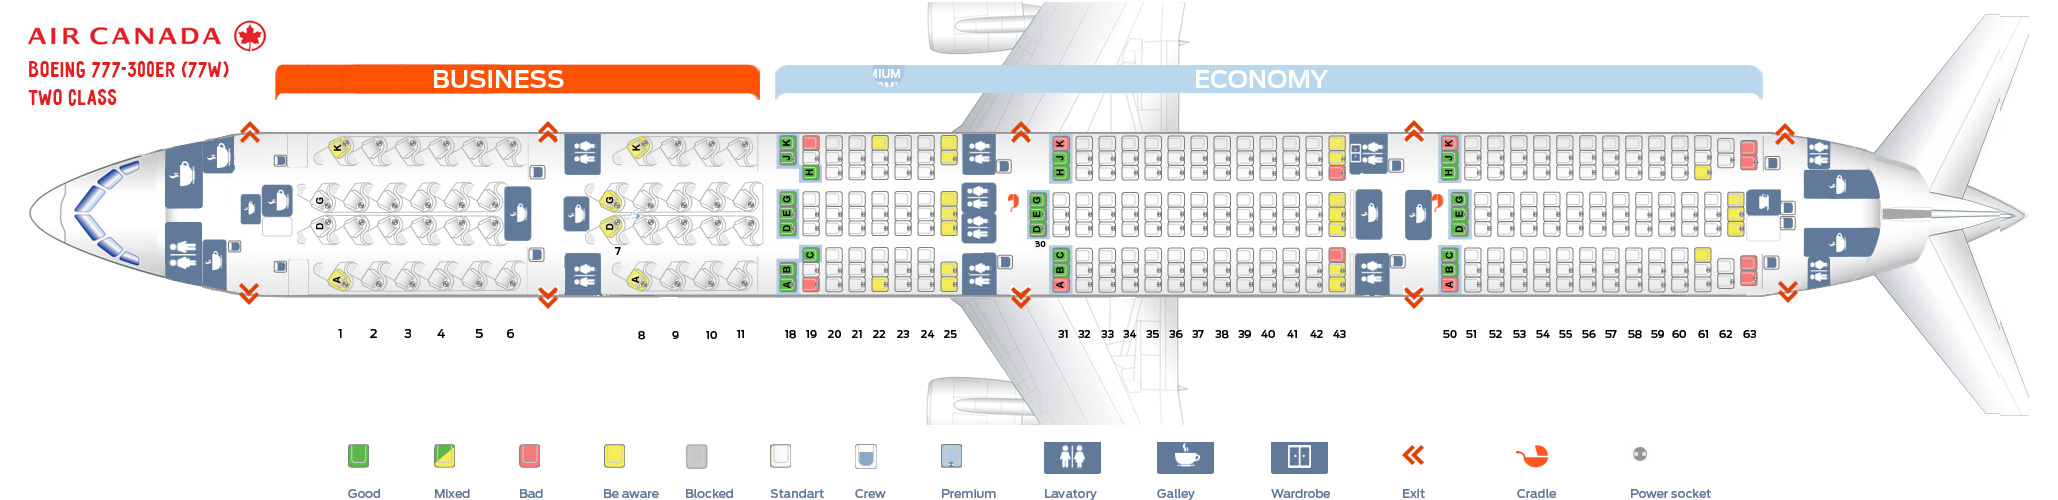 Seat map Boeing 777-300 Air-Canada Two Class